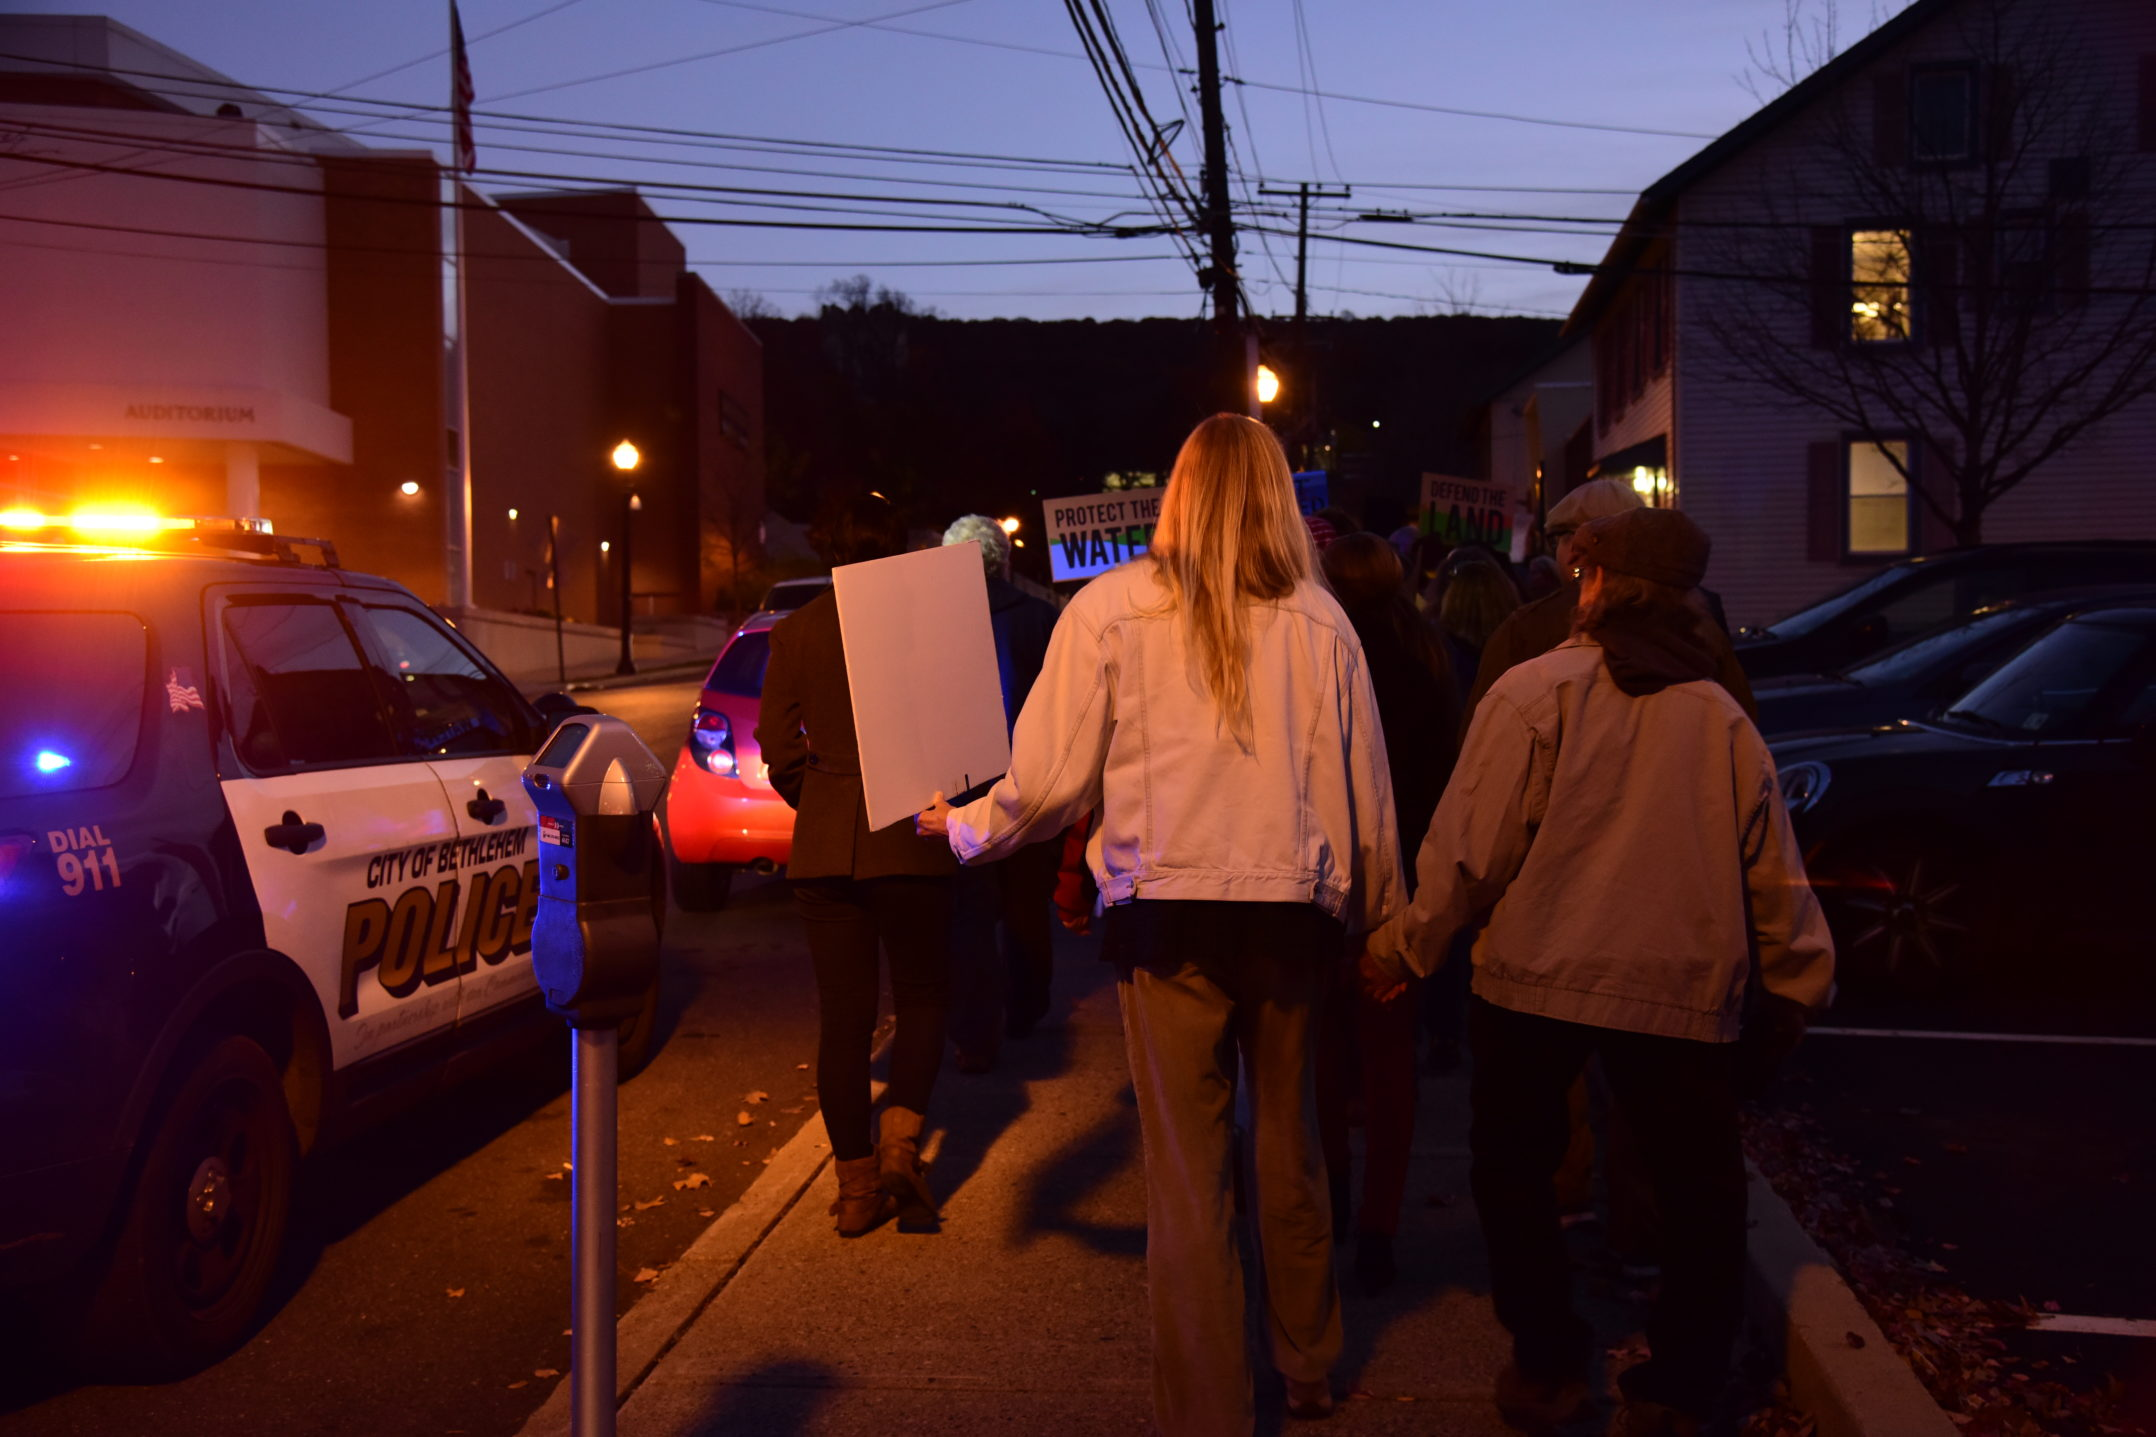 Protesters are briefly stopped by Bethlehem Police as they head back towards the flagpole. The police questioned organizers of the protest on what they were doing before allowing them to continue to campus. (Ashley Omoma/B&W Staff)